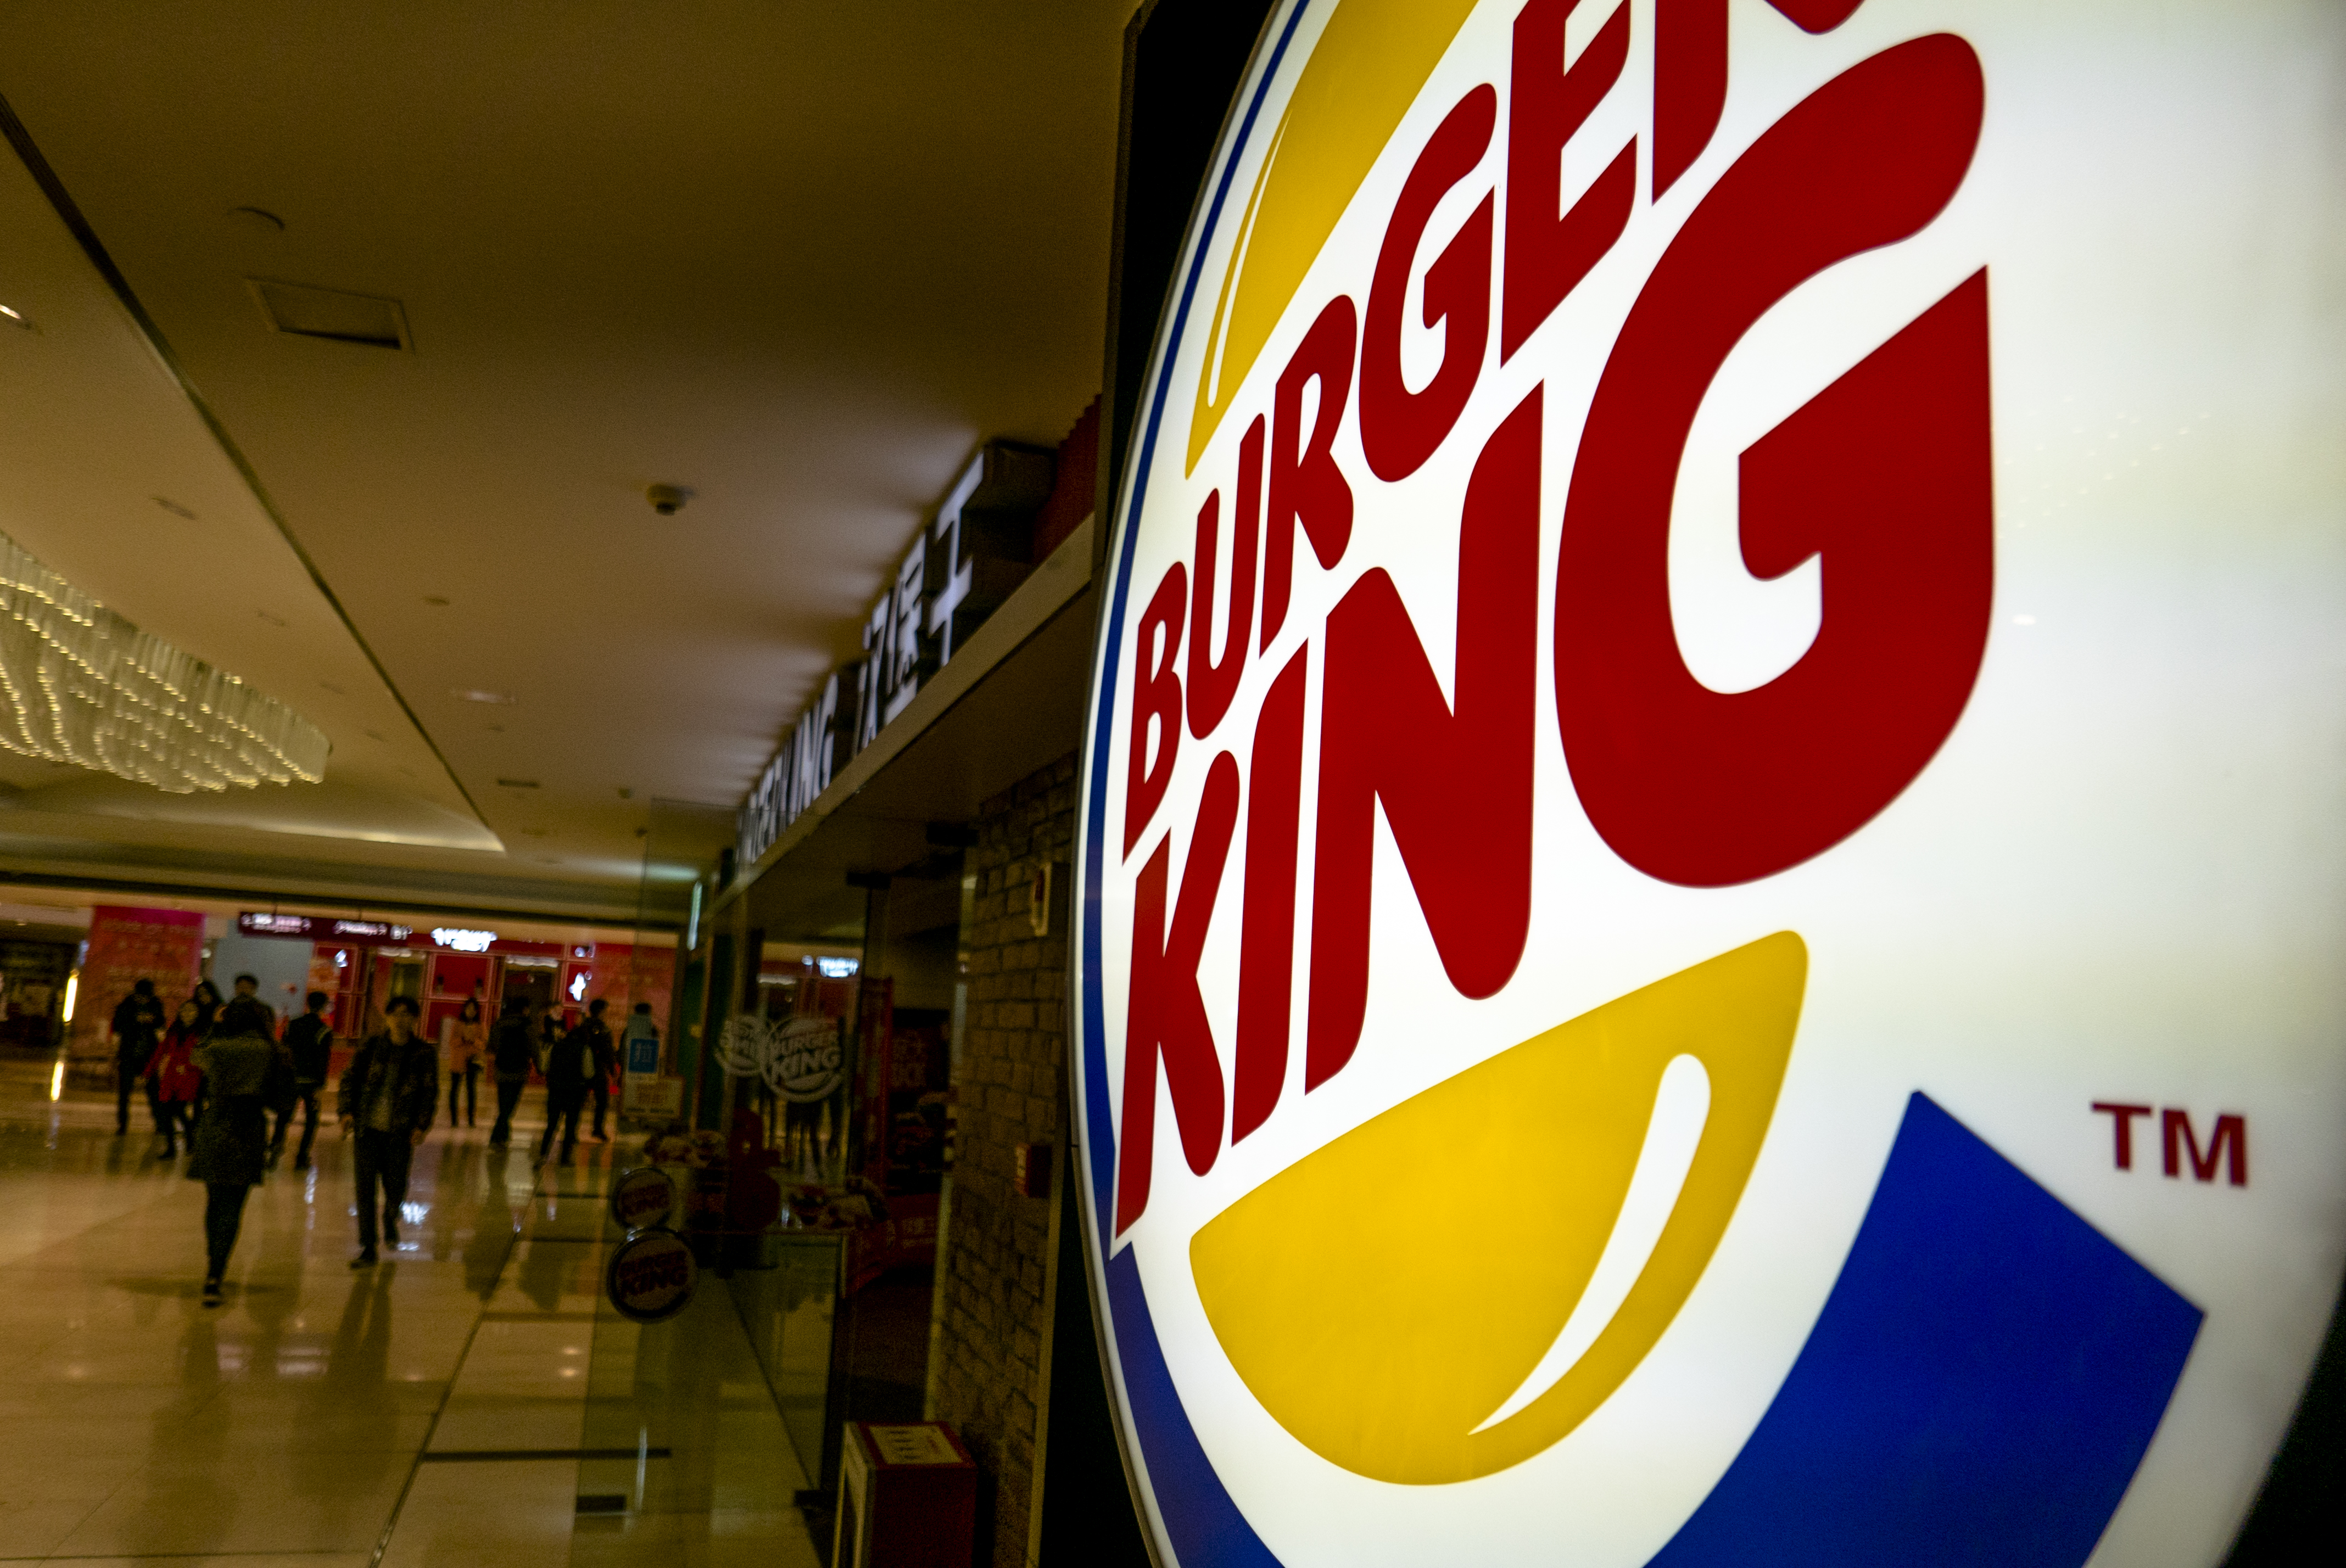 Lightbox logo of Burger King in a shopping mall